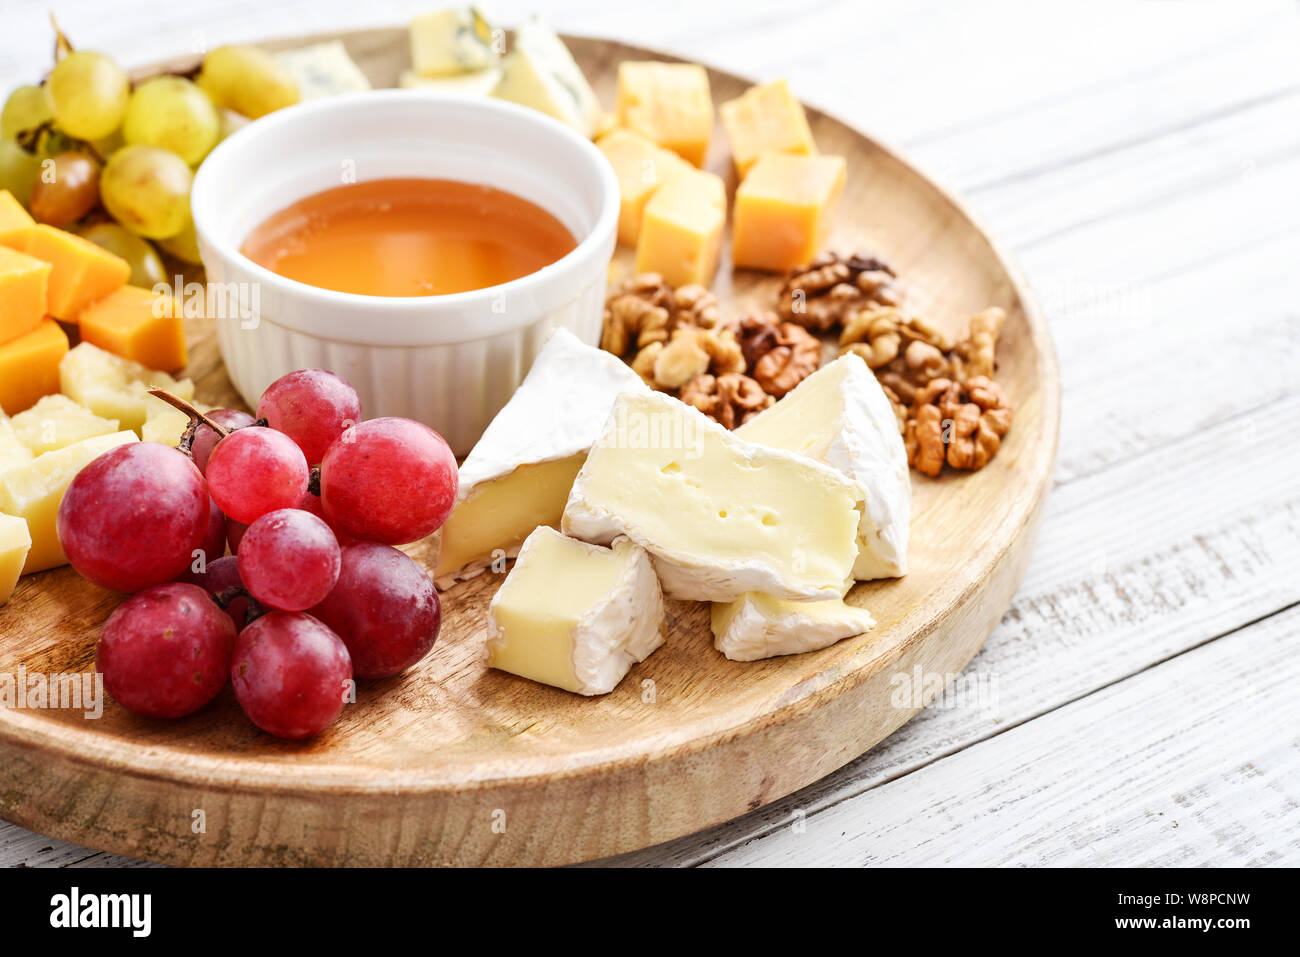 Cheese plate - various types of cheeses with honey, nuts and grapes on a white wooden background closeup Stock Photo